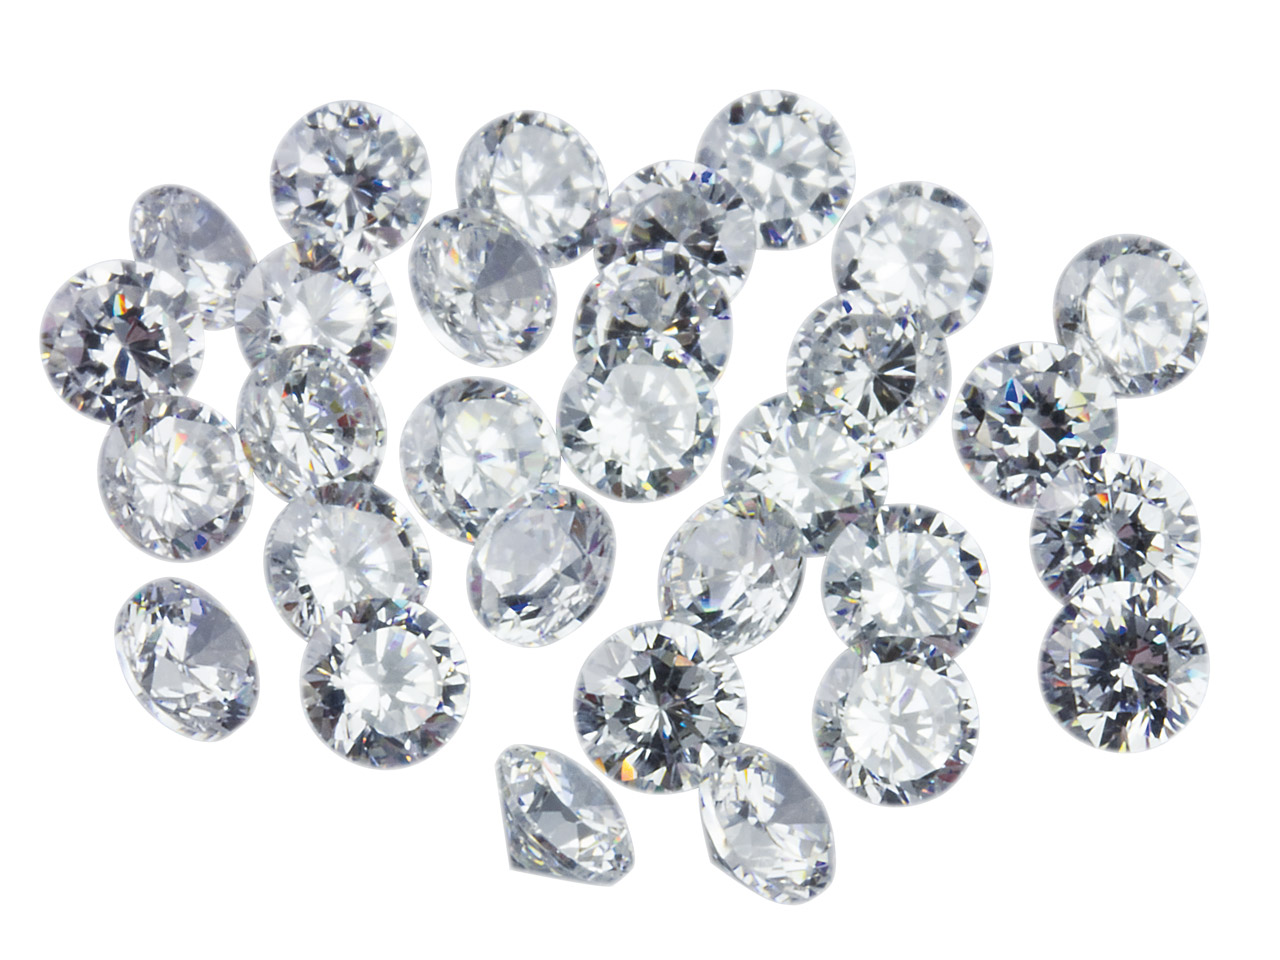 White Cz, Round 2.75mm, Pack of 50, Sizes May Vary Slightly